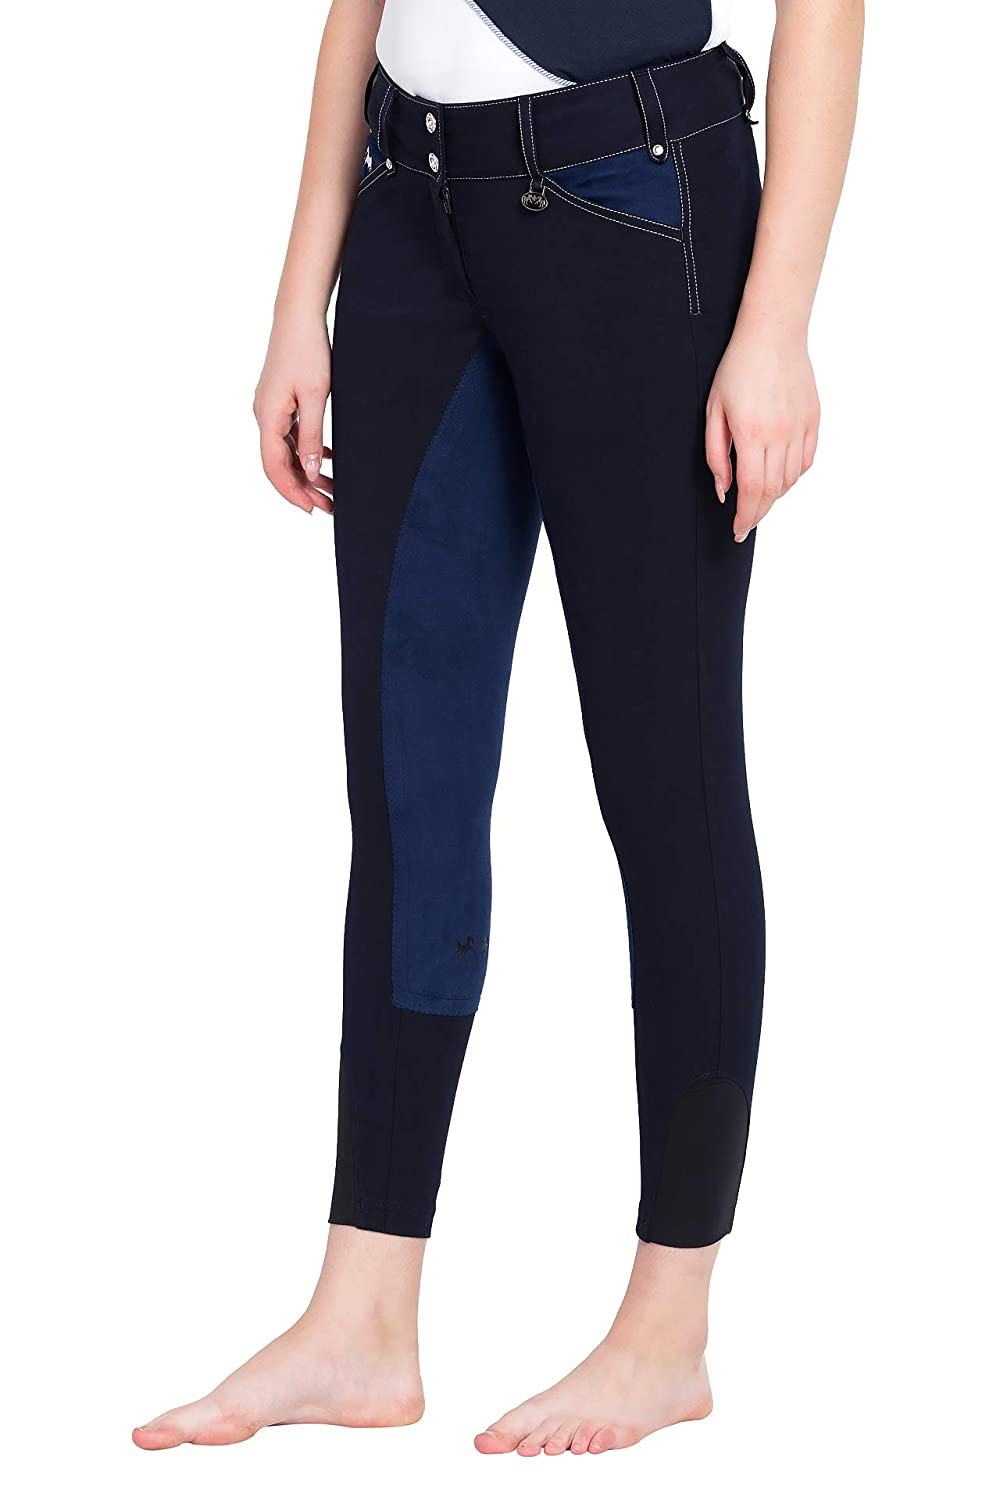 Equine Couture Ladies Blakely Full Seat Breeches w//Contrast Saddle Stitch JPC Equestrian Inc 110410-P